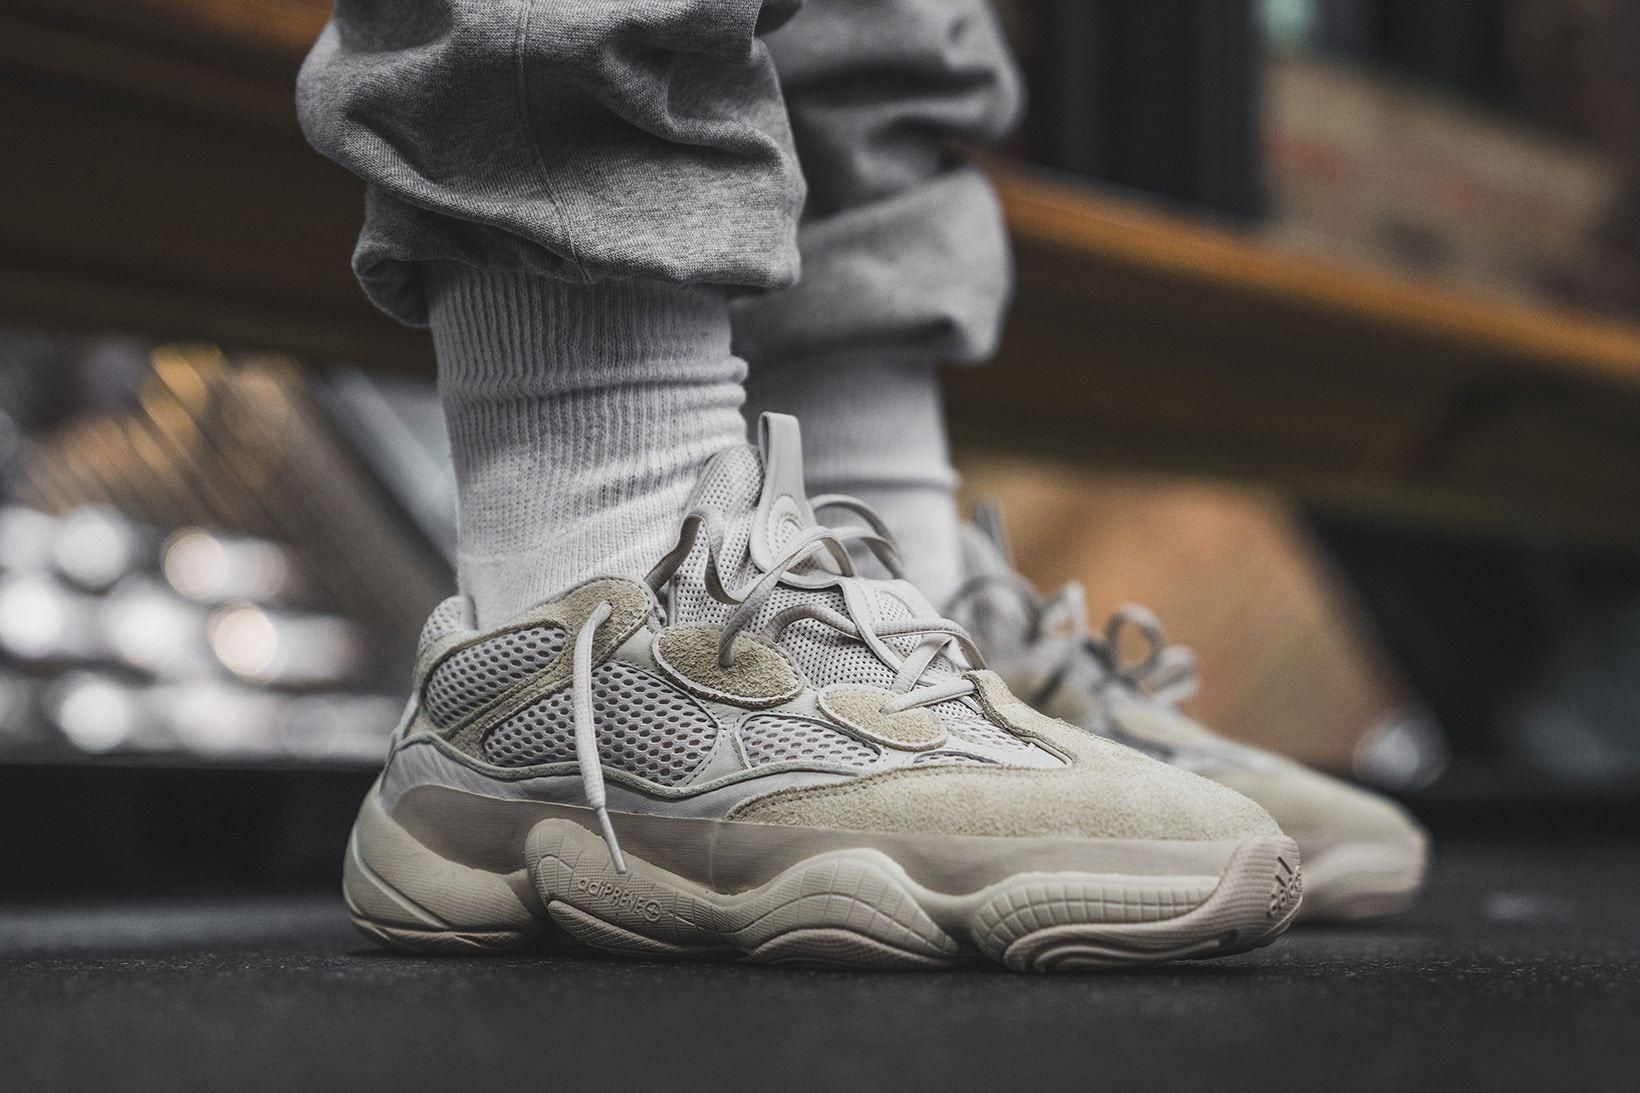 Adidas Yeezy 500 Blush To Release In April Eu Kicks Sneaker Magazine Sneakers Men Fashion Trending Sneakers Sneakers Fashion